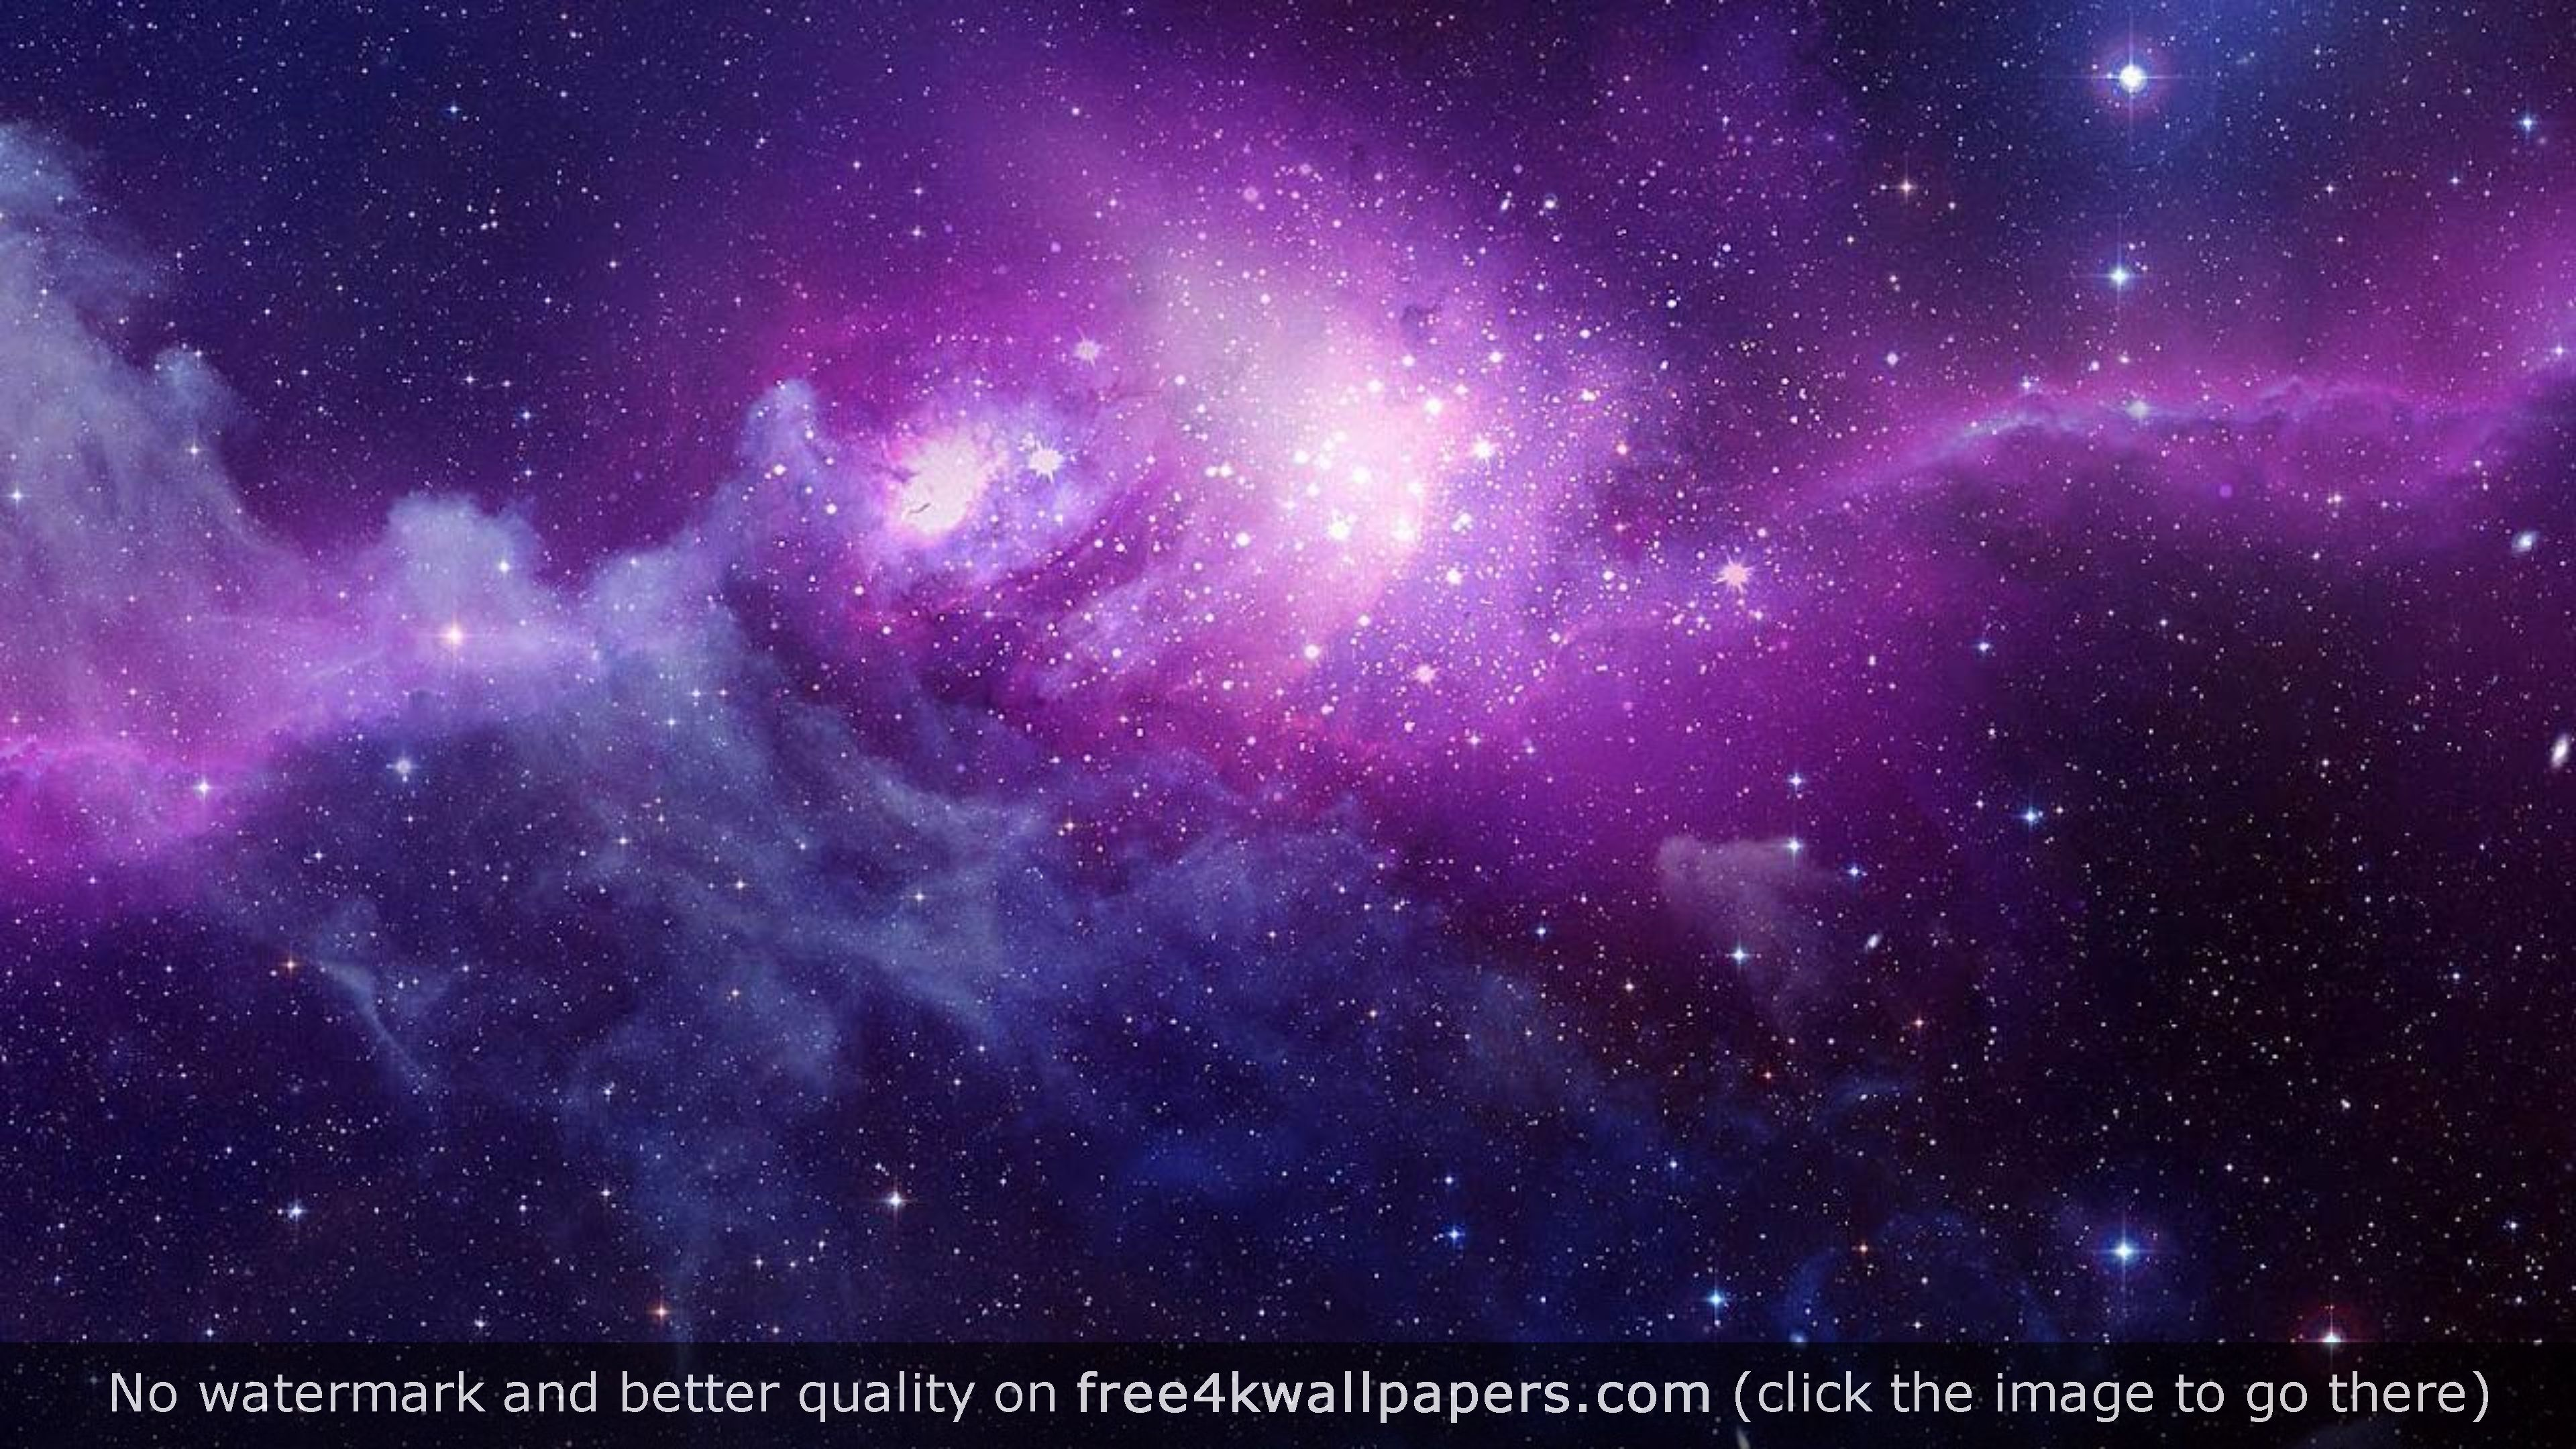 Purple Hysteresis Abstract Wallpaper Hd Abstract 4k Wallpapers Images Photos And Background Purple Wallpaper Abstract Wallpaper Pink And Purple Wallpaper